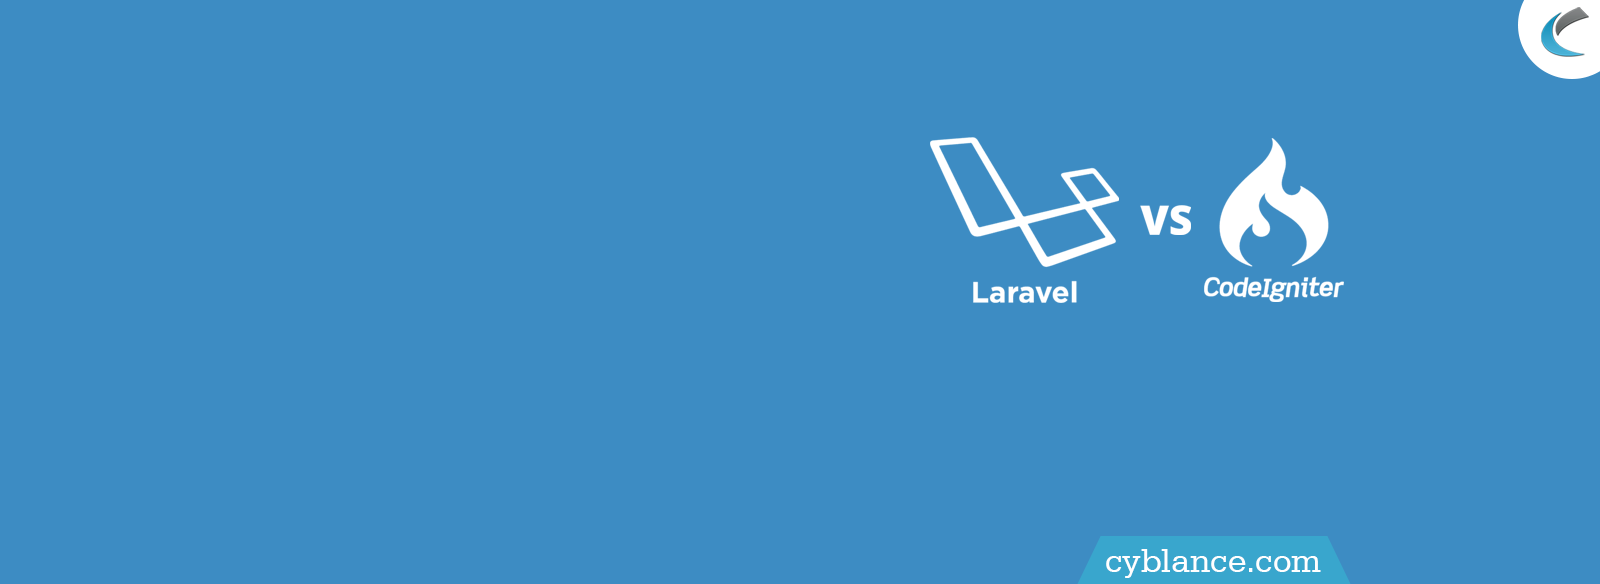 Understanding Important Differences between Laravel vs CodeIgniter